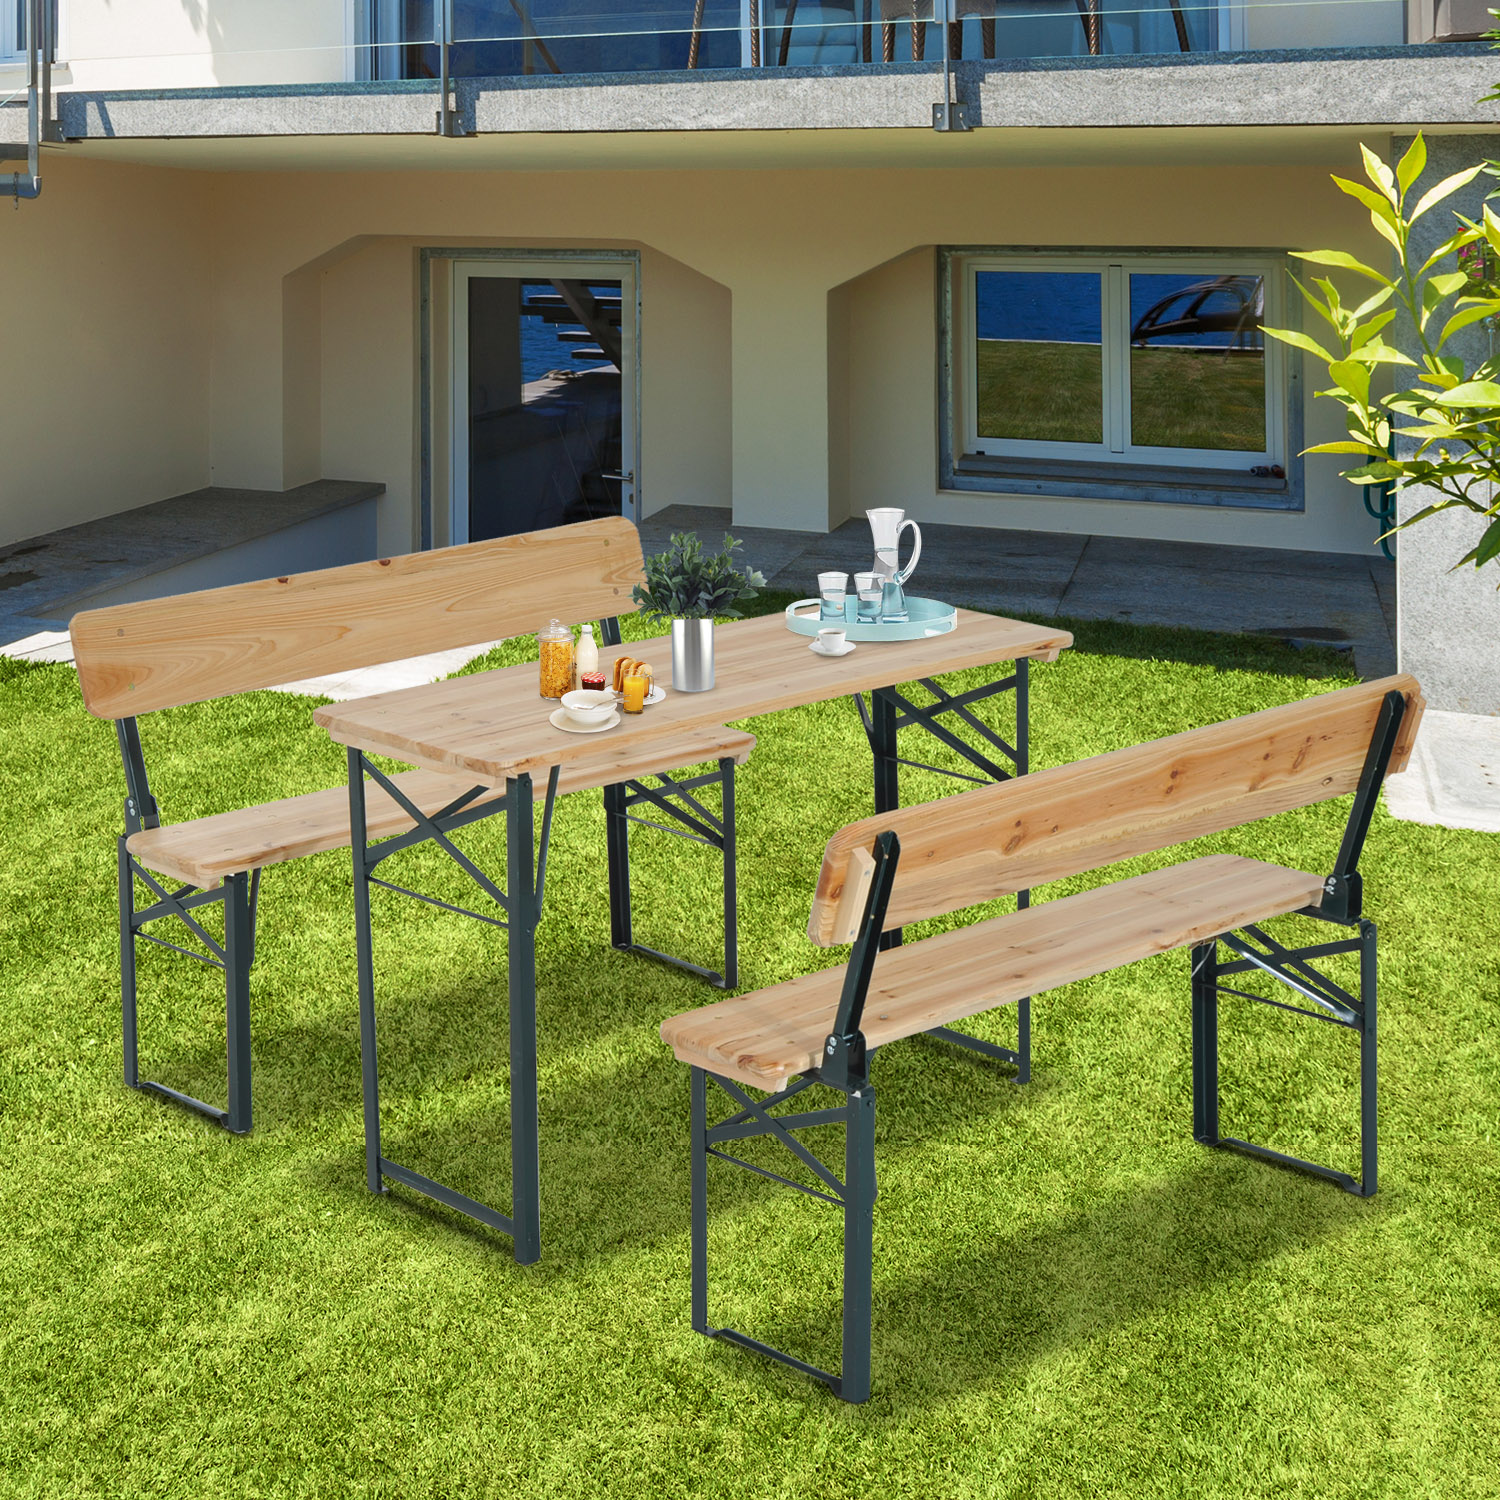 """Image of CAD $159.99 Outsunny 3pcs Table Bench Set Camping Picnic Patio Garden Folding Wooden Top / 46"""" Heavy Duty 3pc with Backrest Portable BBQ Party (4') 46inch Canada 46655328120"""